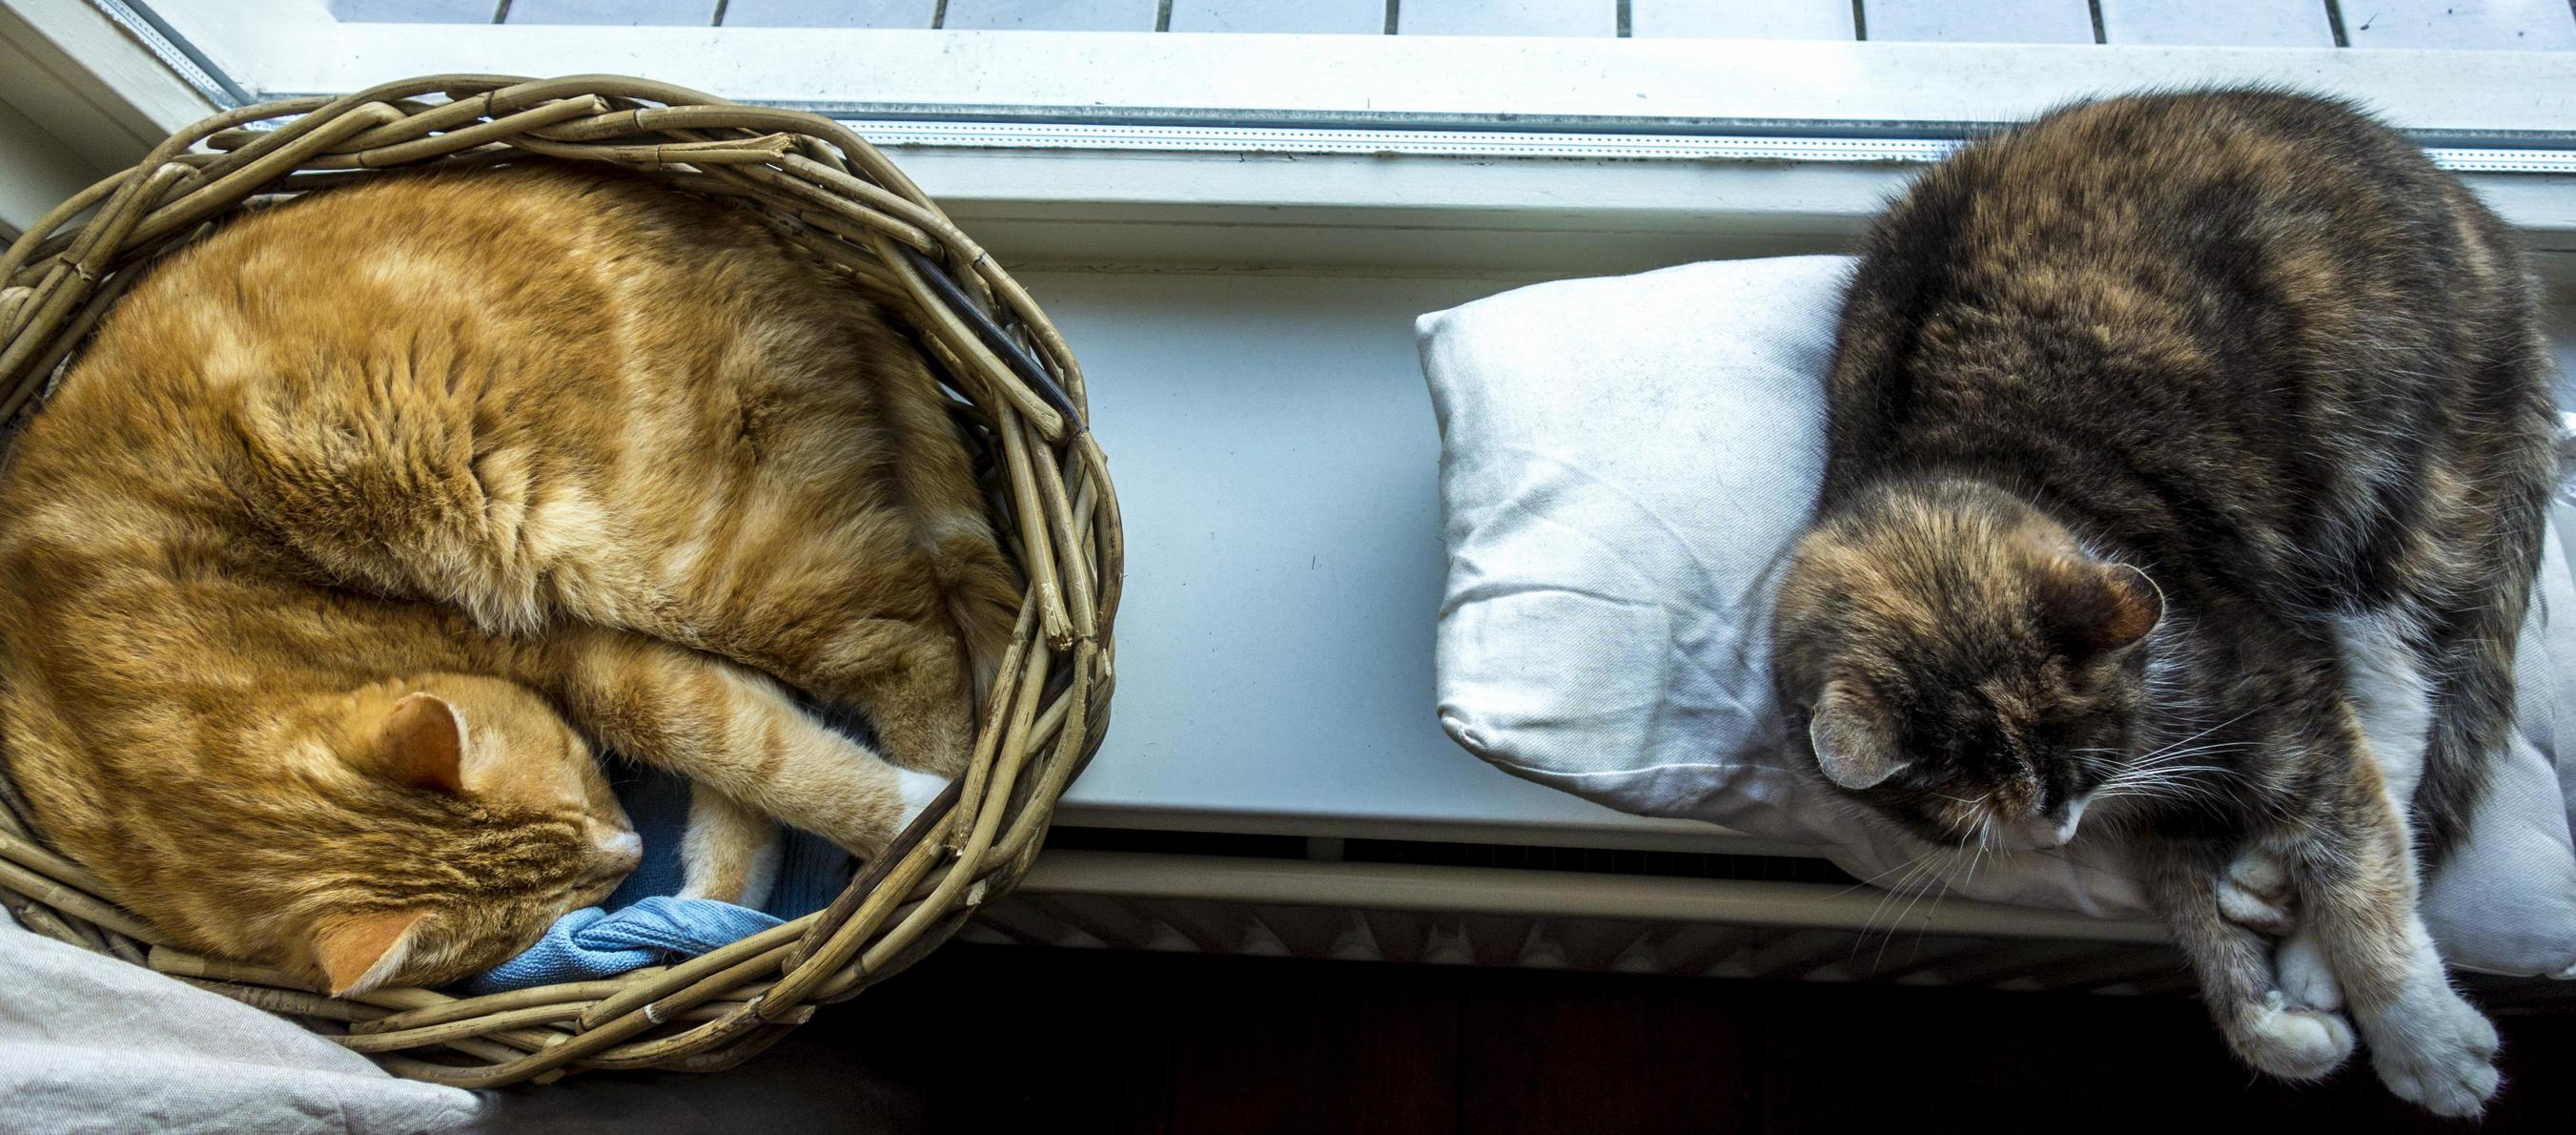 Life is so hard when you are a cat..